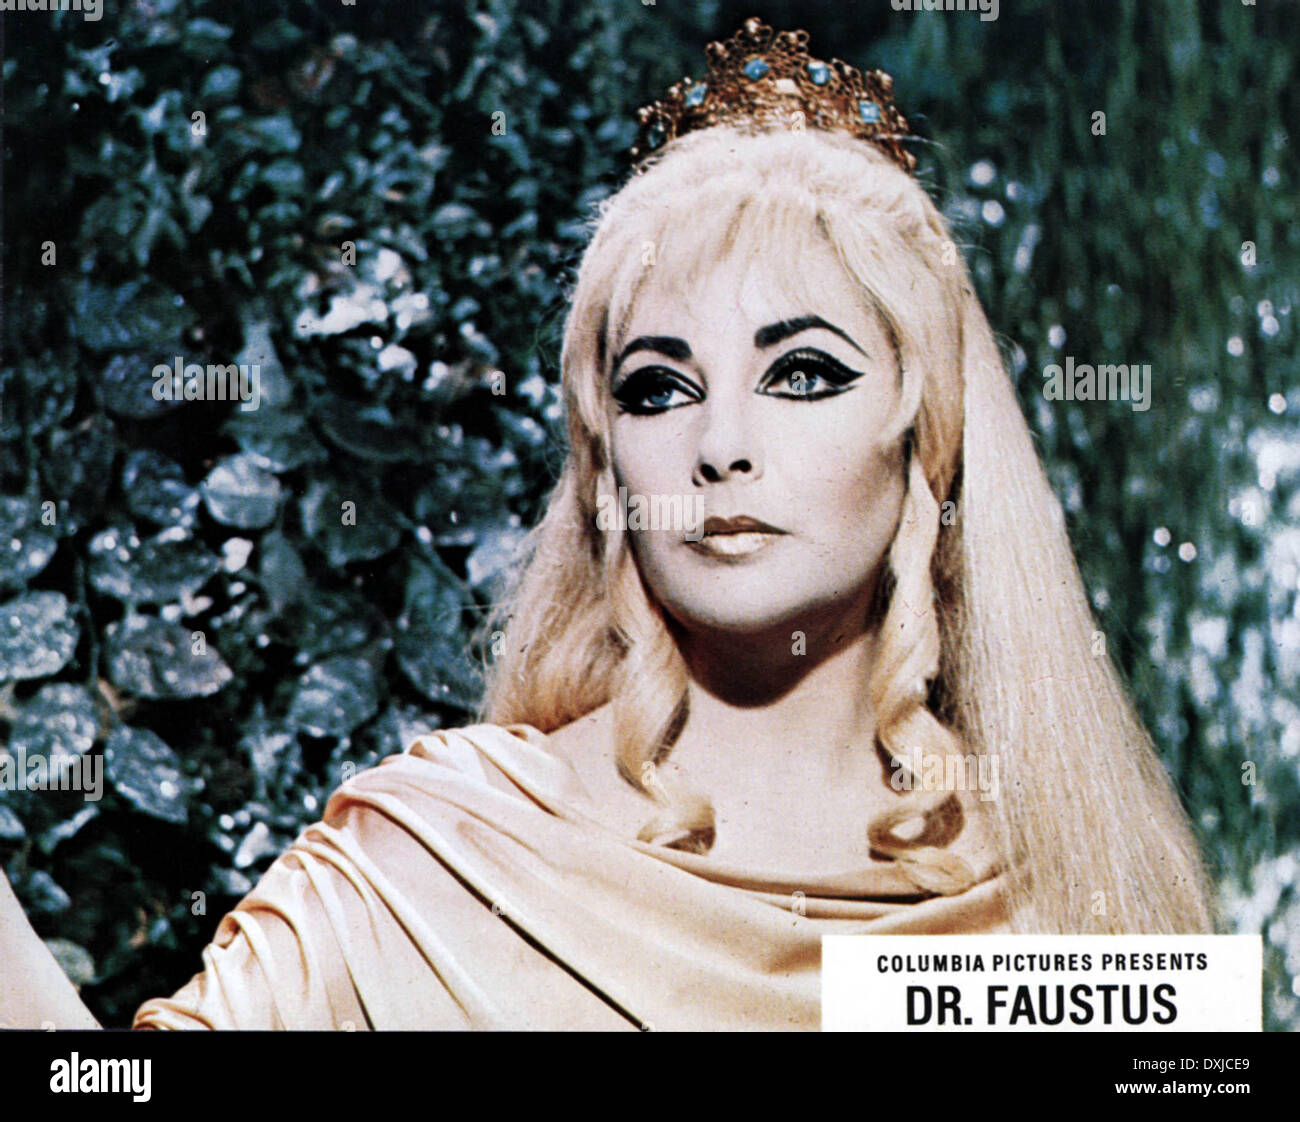 DOCTOR FAUSTUS (BR1967) Elizabeth Taylor as Helen of Troy - Stock Image